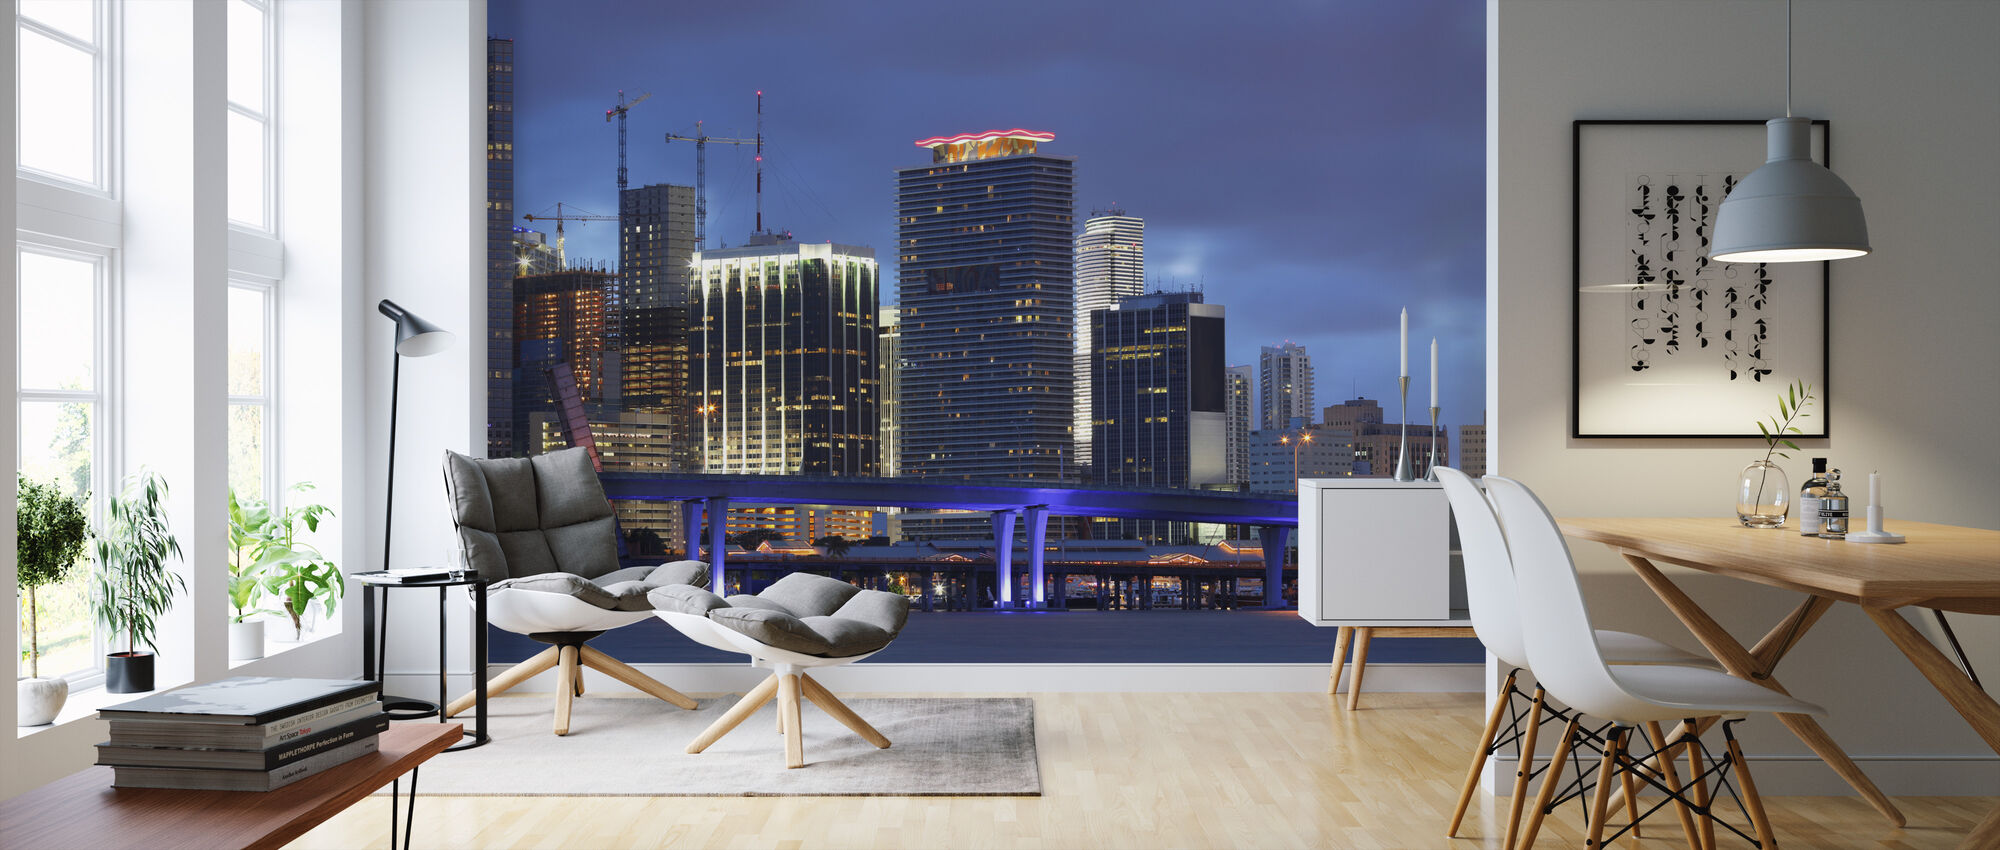 Downtown Miami, Florida - Wallpaper - Living Room